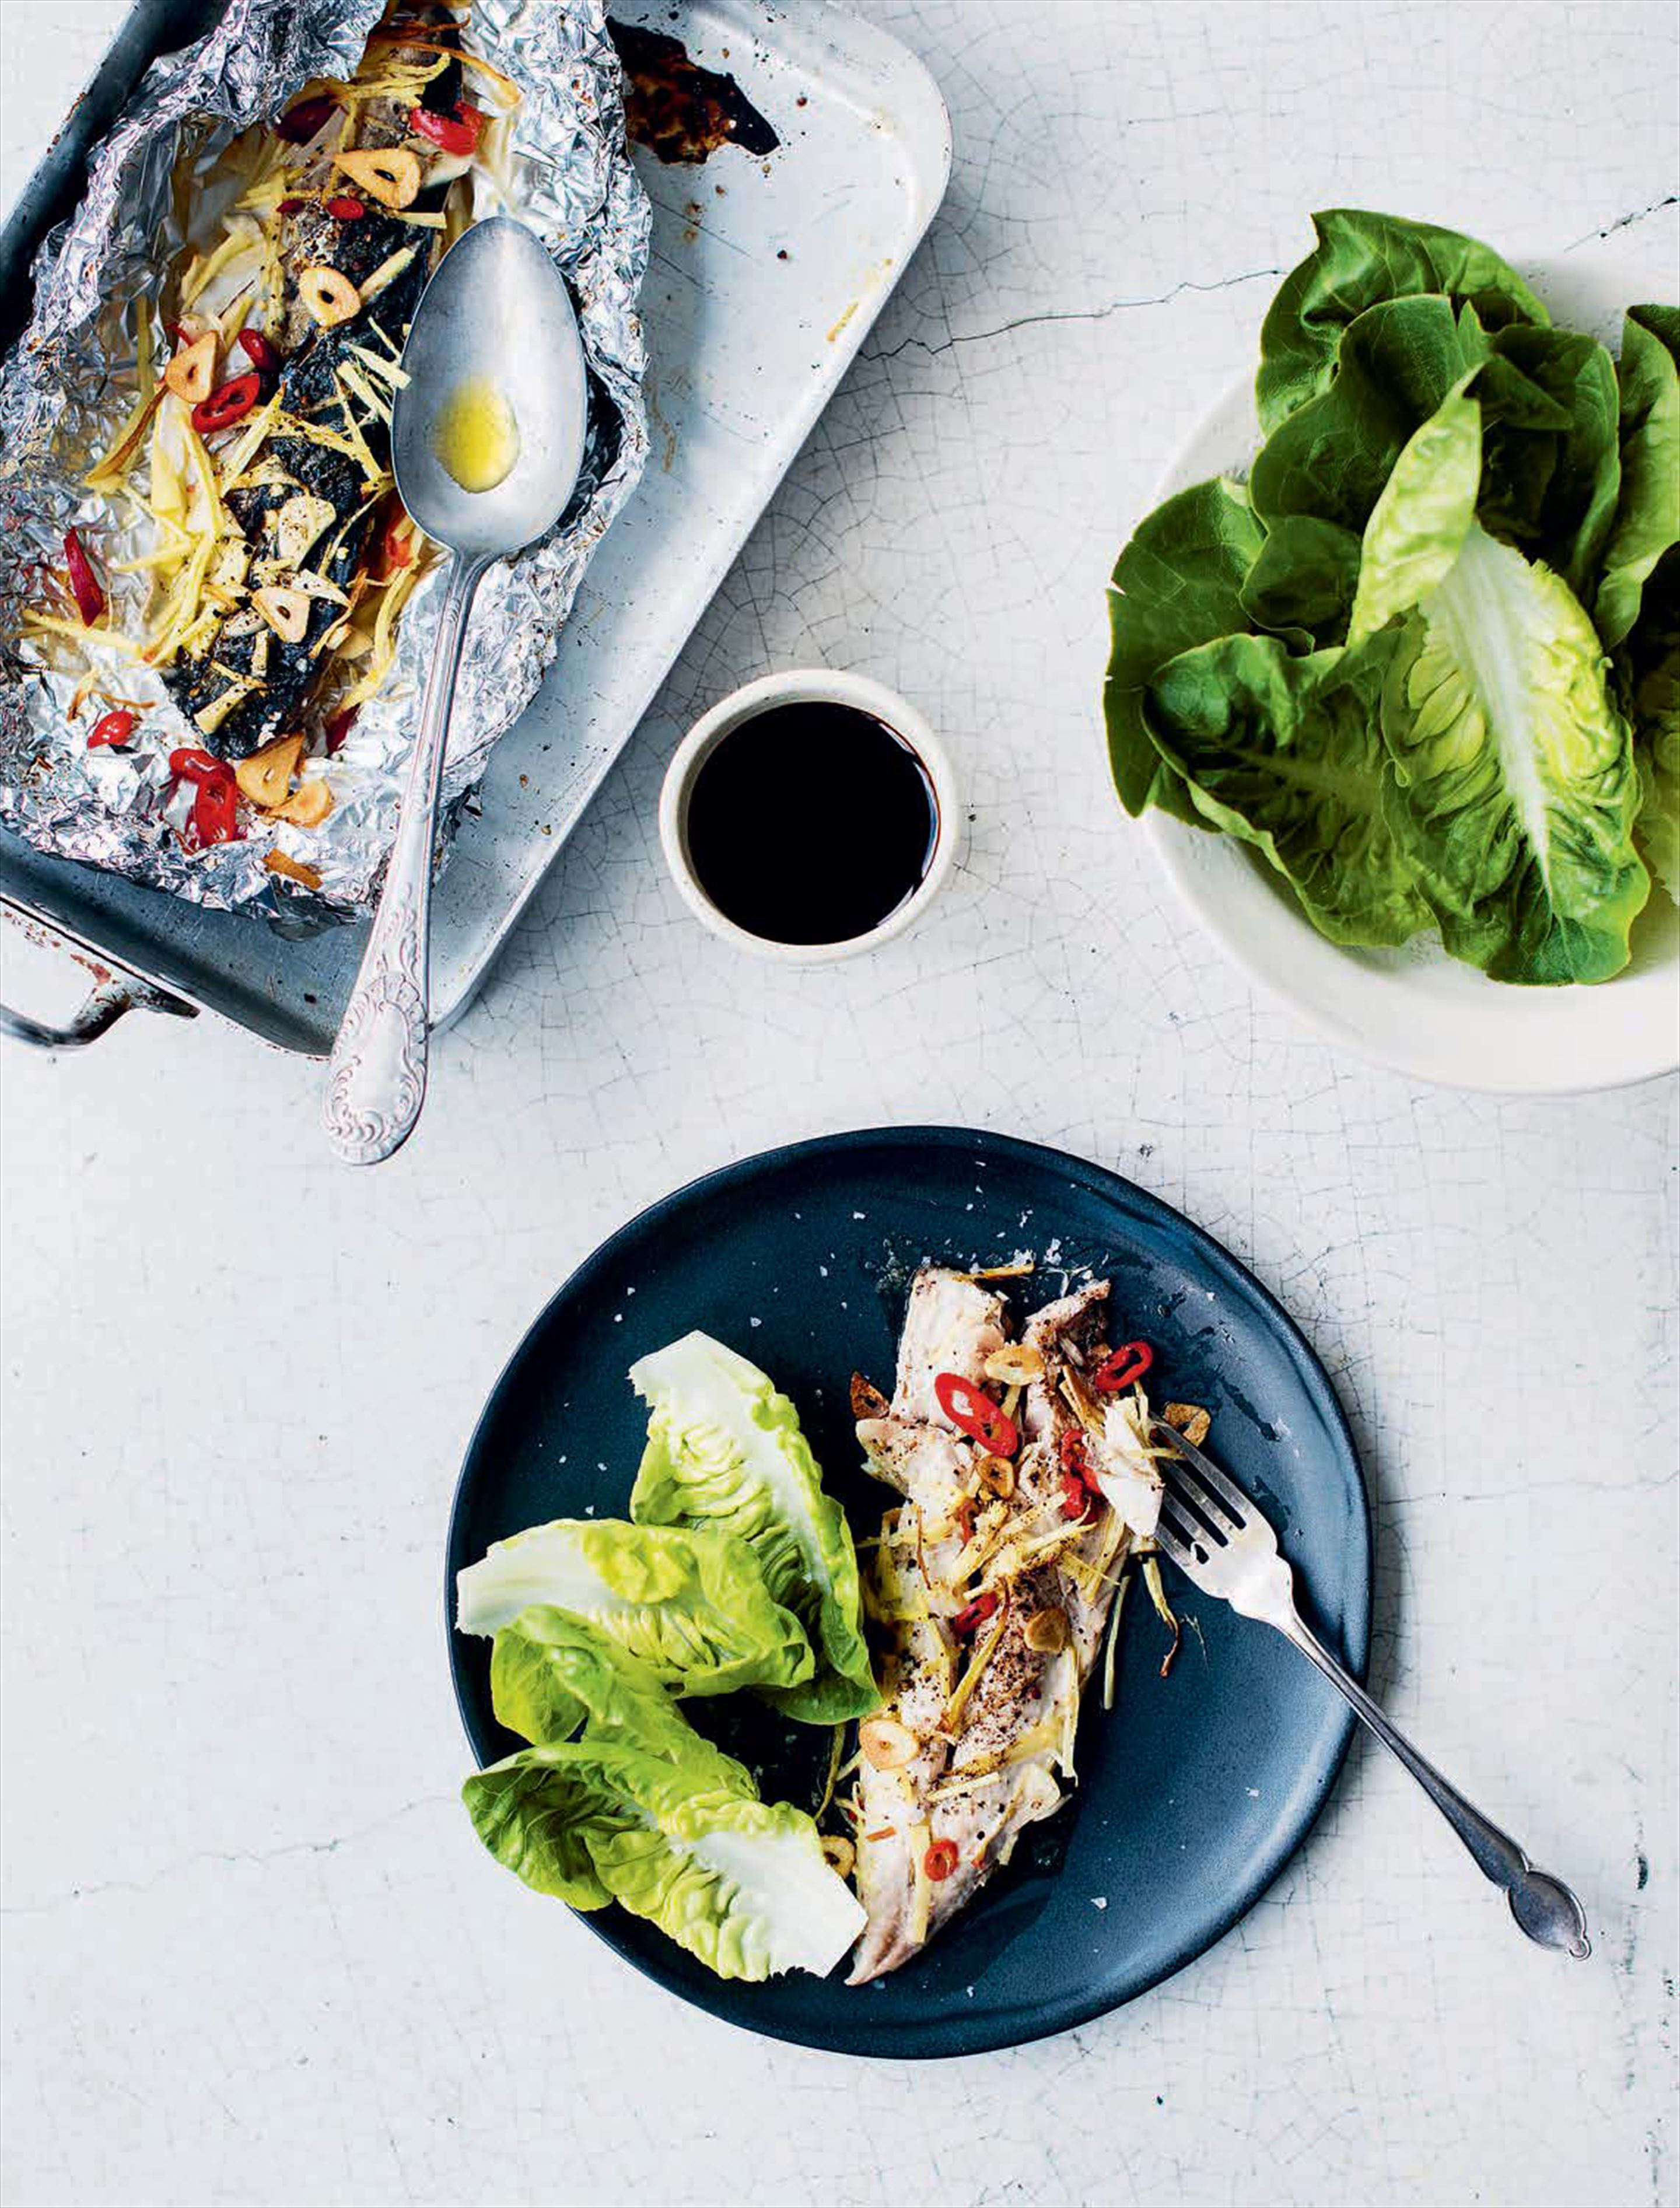 Asian-style mackerel foil parcels